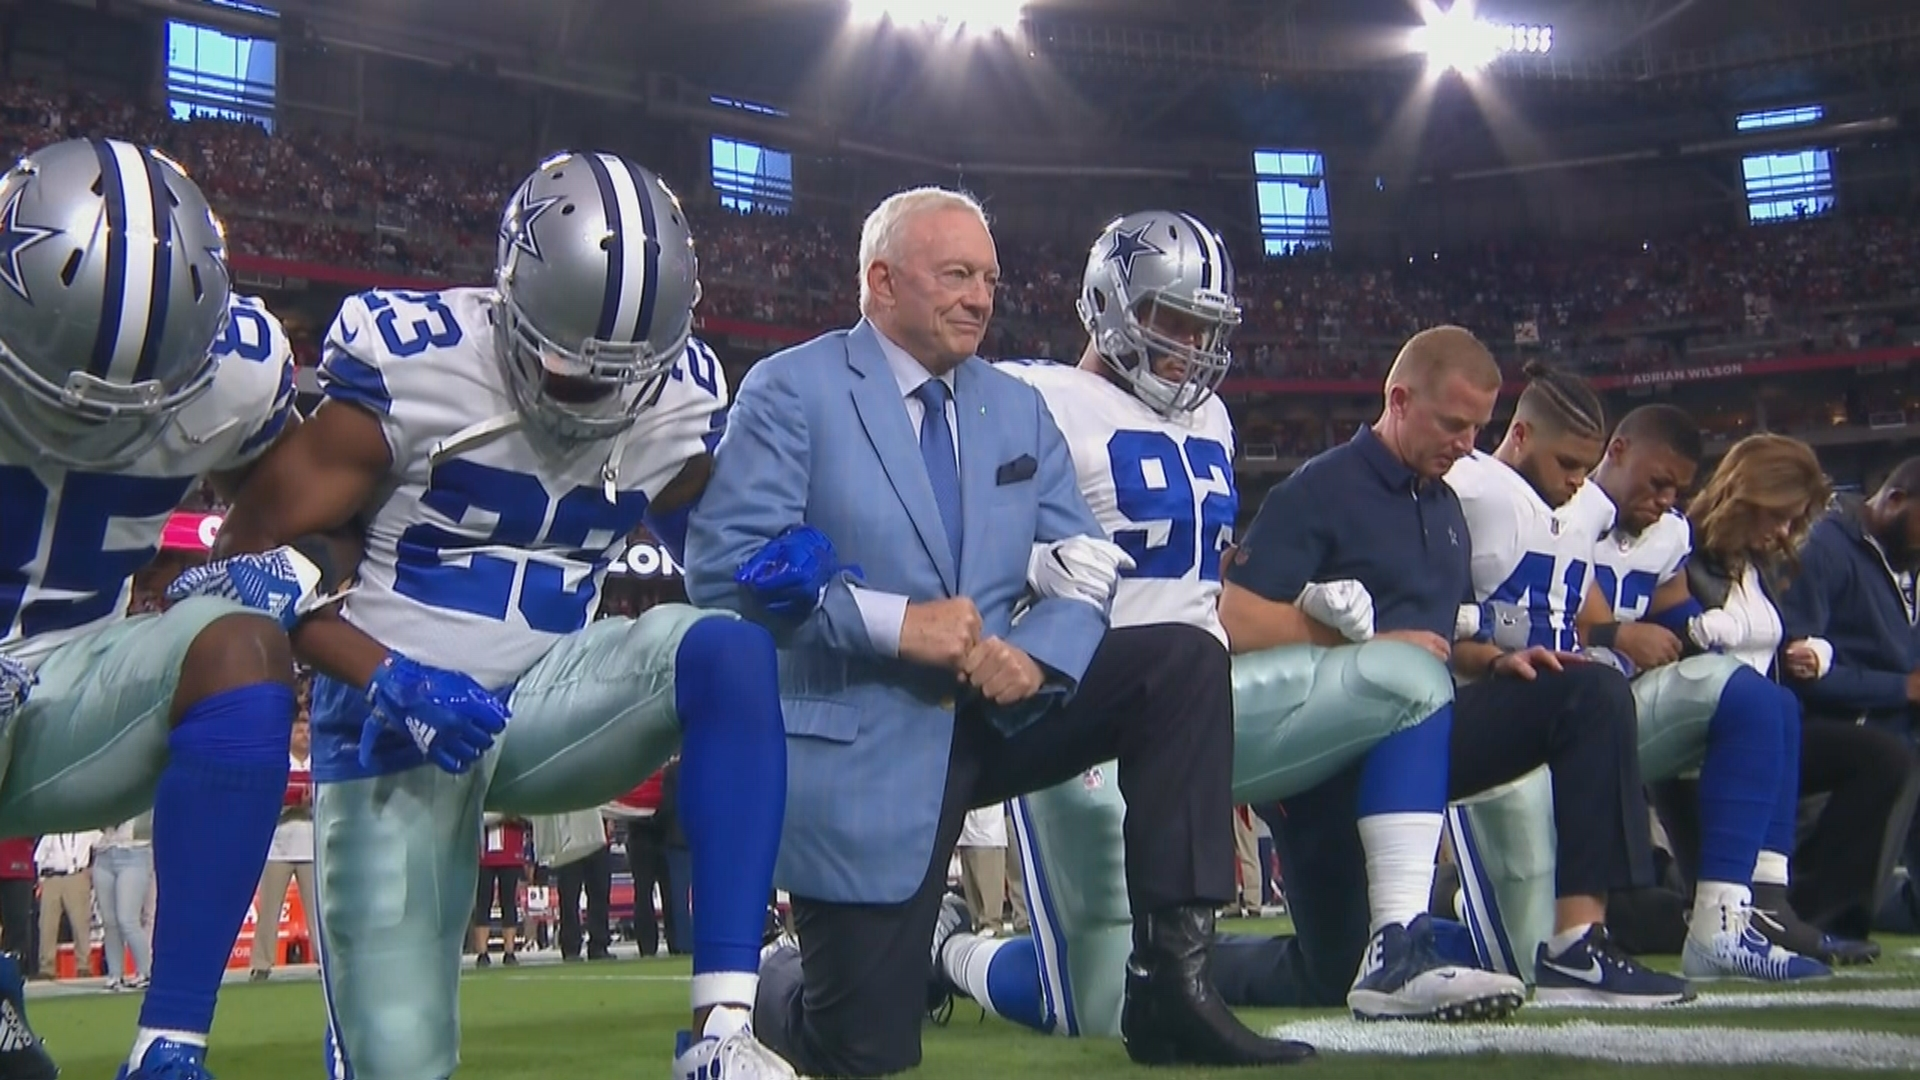 198ca58e752 memeorandum  Jerry Jones and the Cowboys took a knee before the national  anthem (Adam Stites SBNation.com)